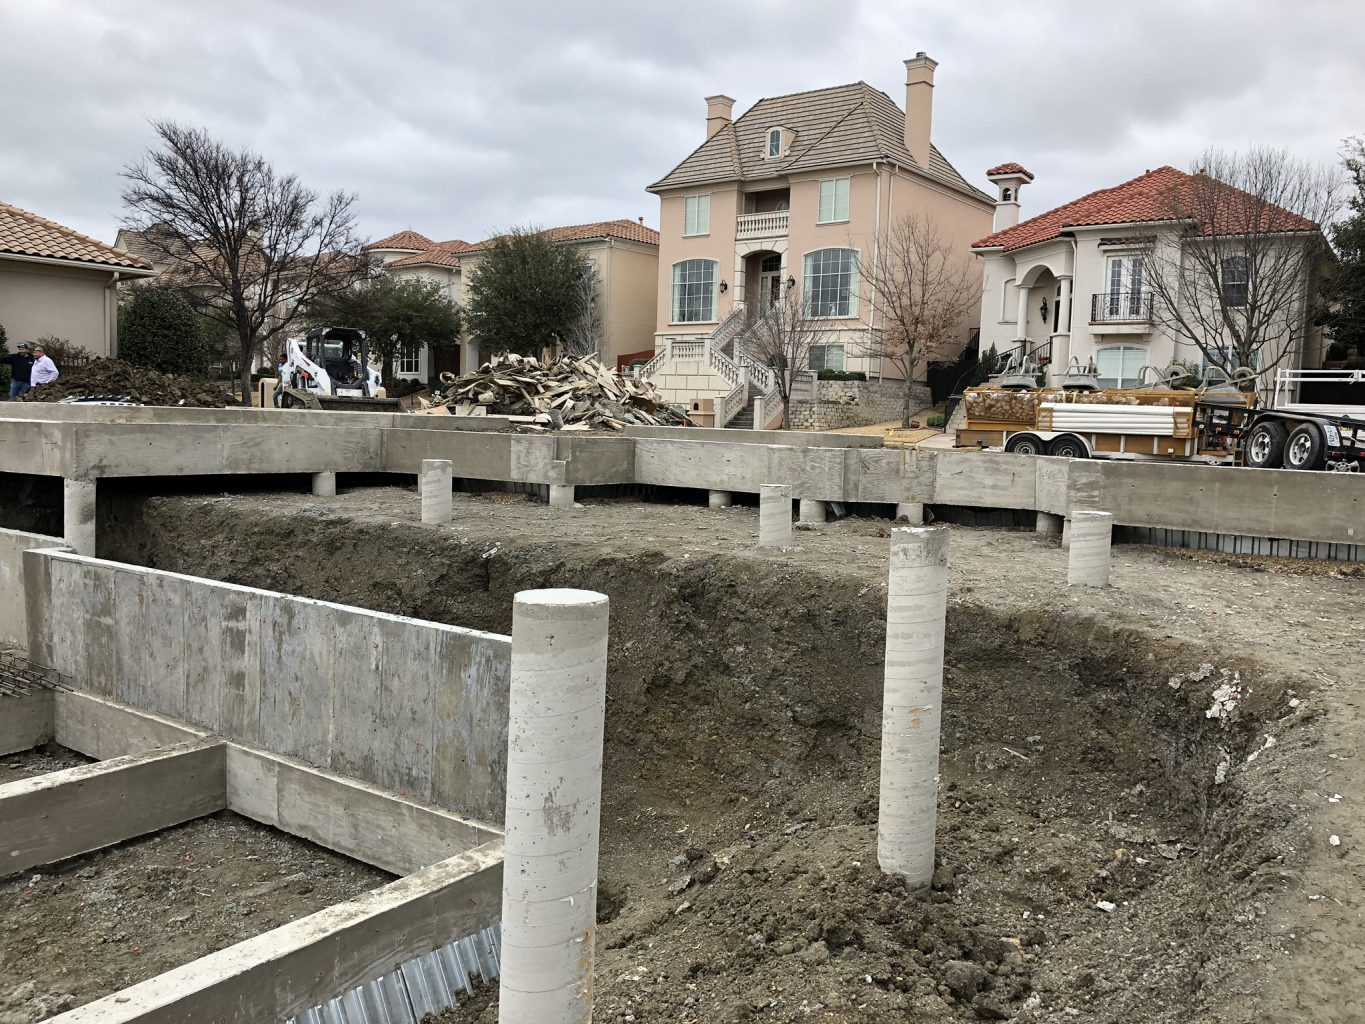 This is the backyard from street view. The house will rests on these raised pillars. Our job today is to install the swimming pool pillars - which is a complex job of its own. More details below.